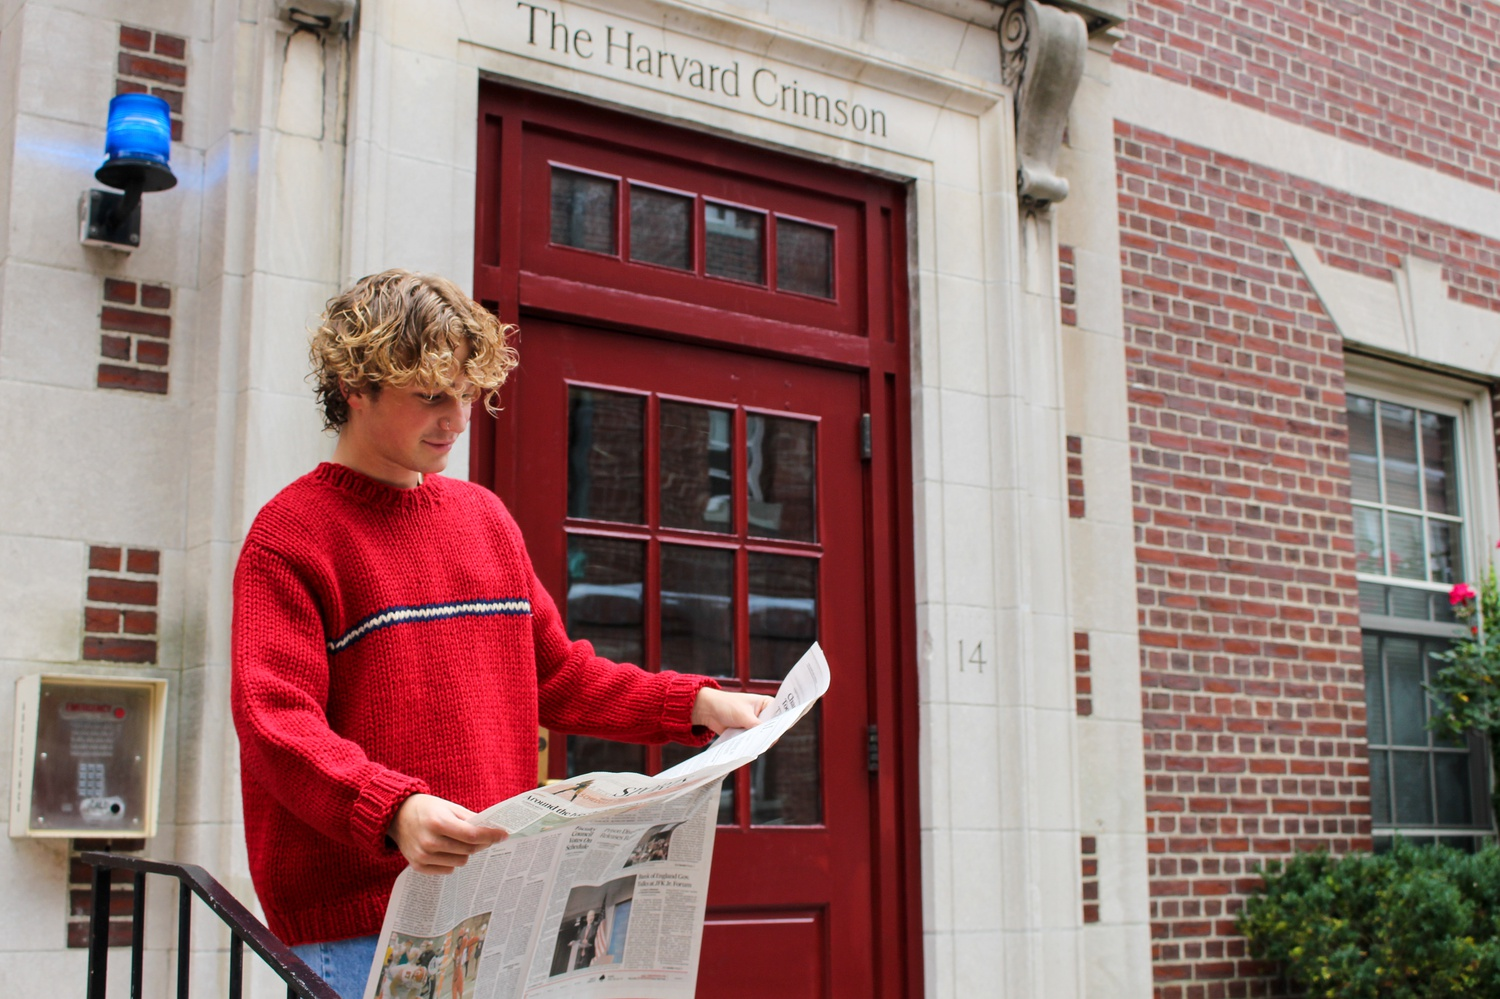 Paul G. Sullivan reads an edition of the Harvard Crimson's newspaper, the daily that Pete Buttigieg wrote a regular column for during his years as a student.